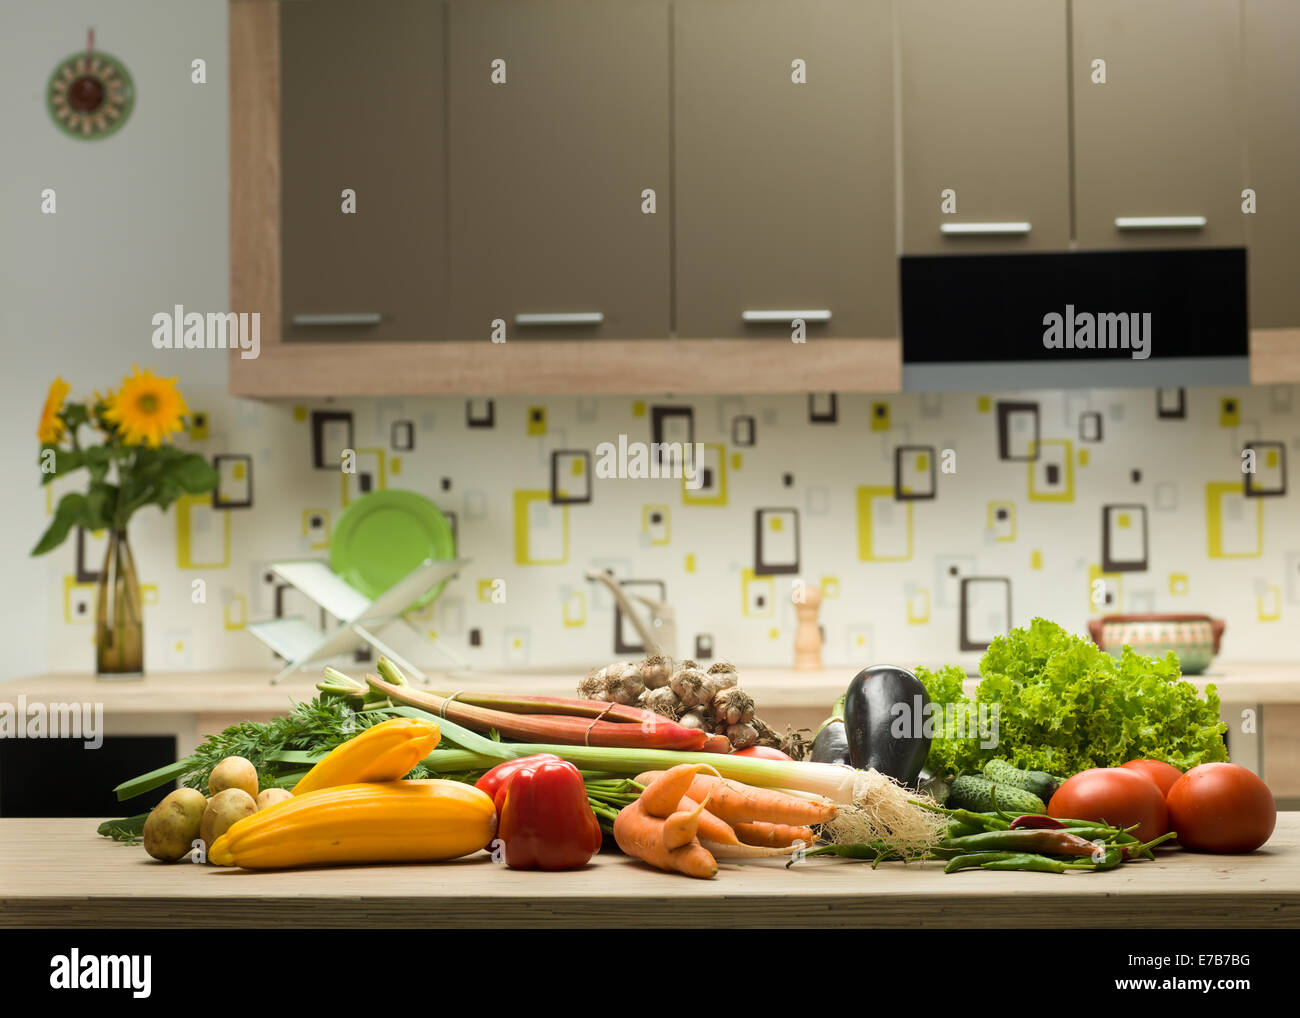 variety of healthy vegetables on a kitchen countertop - Stock Image